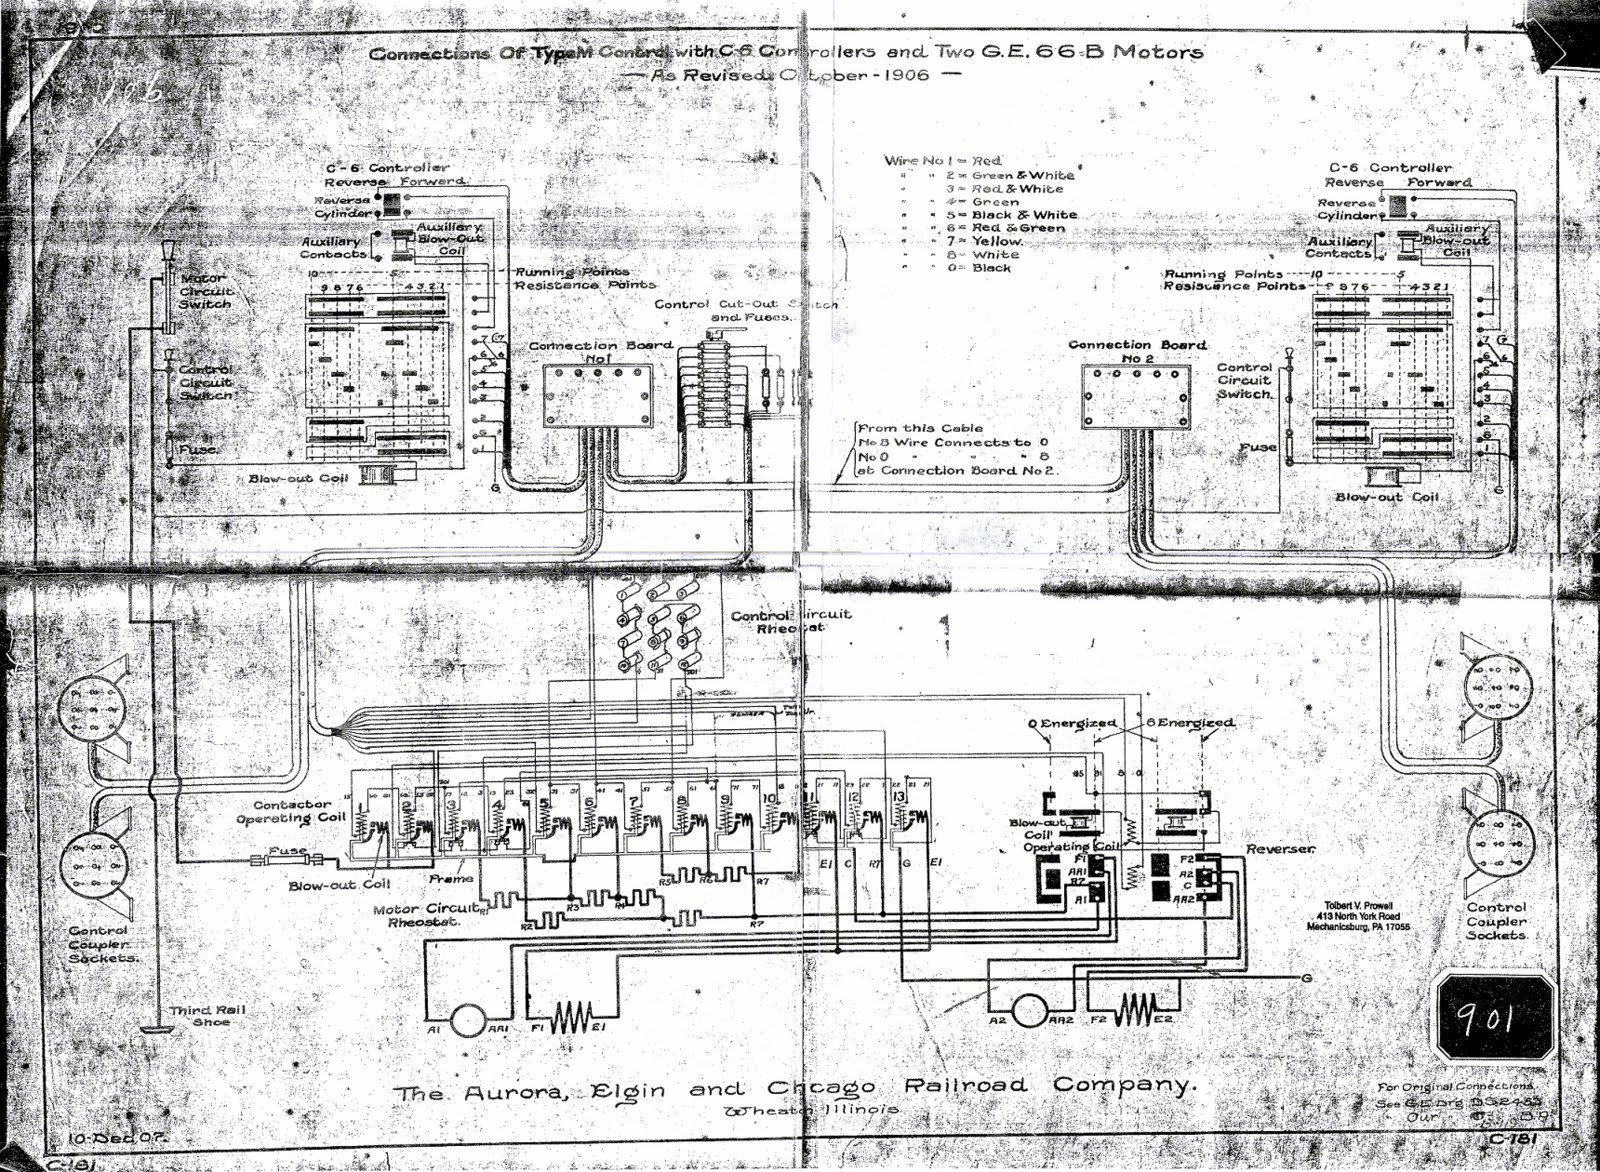 Hicks Car Works Control Circuit Diagrams Gm Hei Module Wiring Diagram Engine Scheme For Your